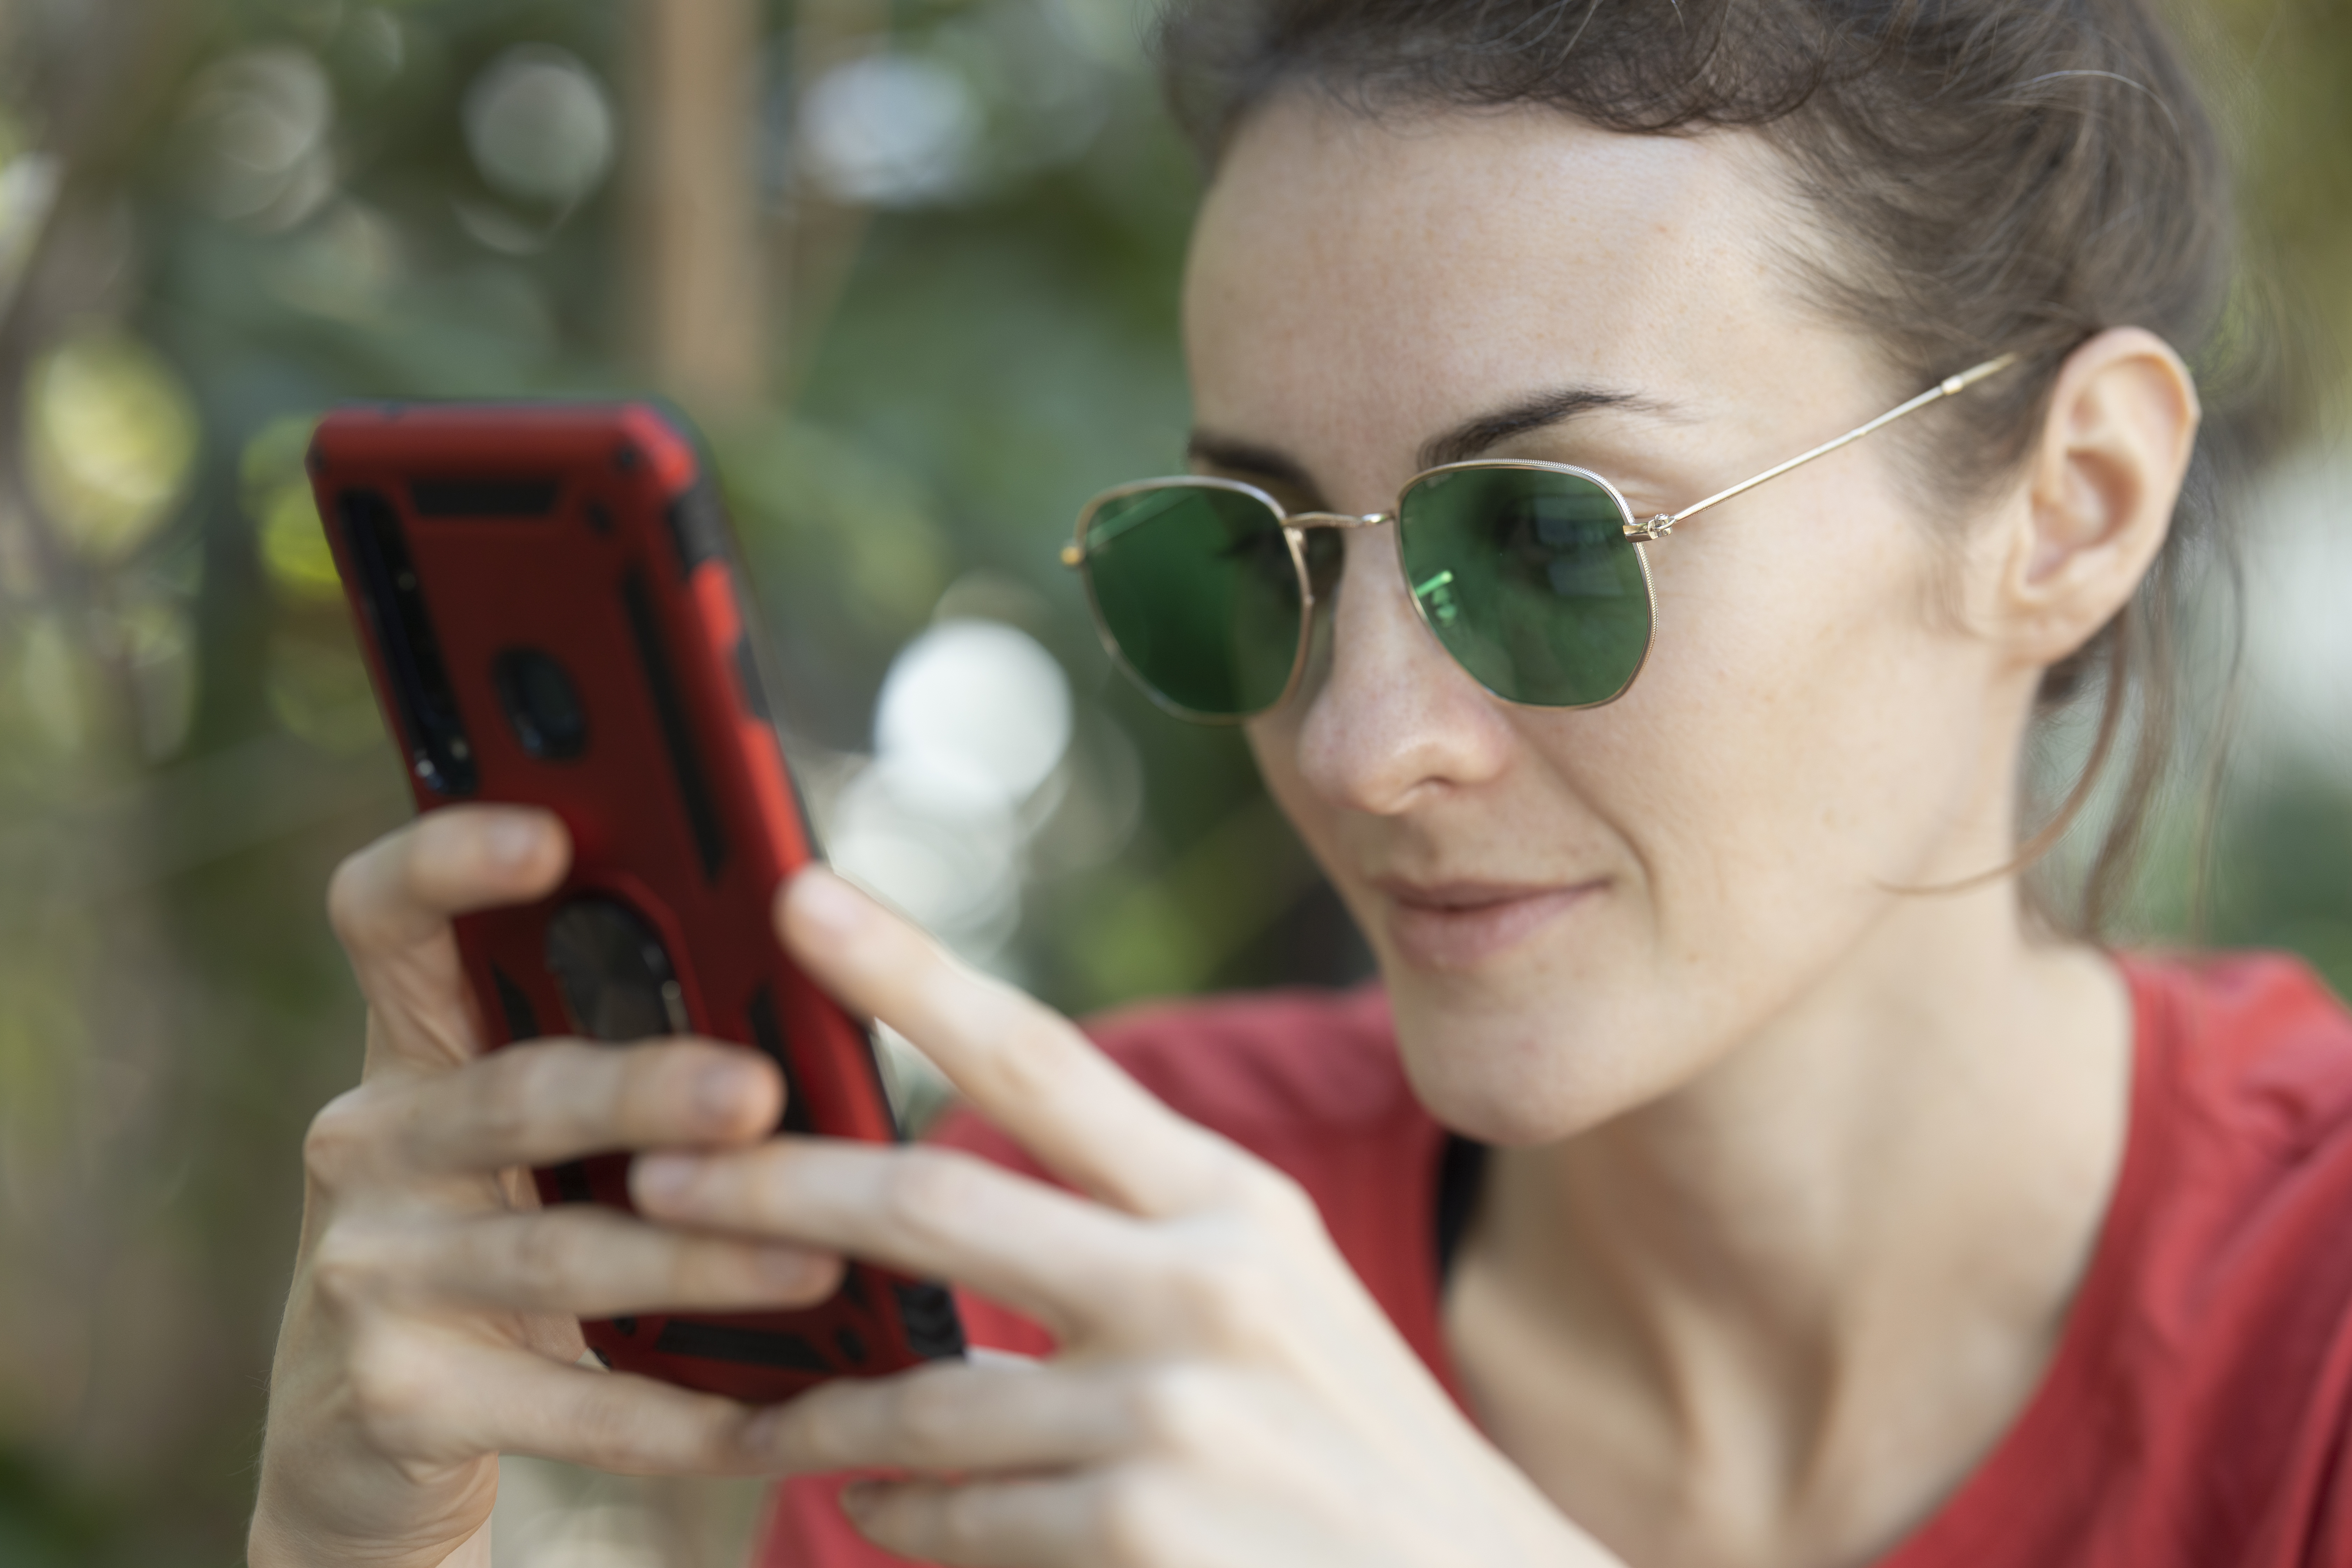 Woman Holding Smartphone and Wearing Sunglasses